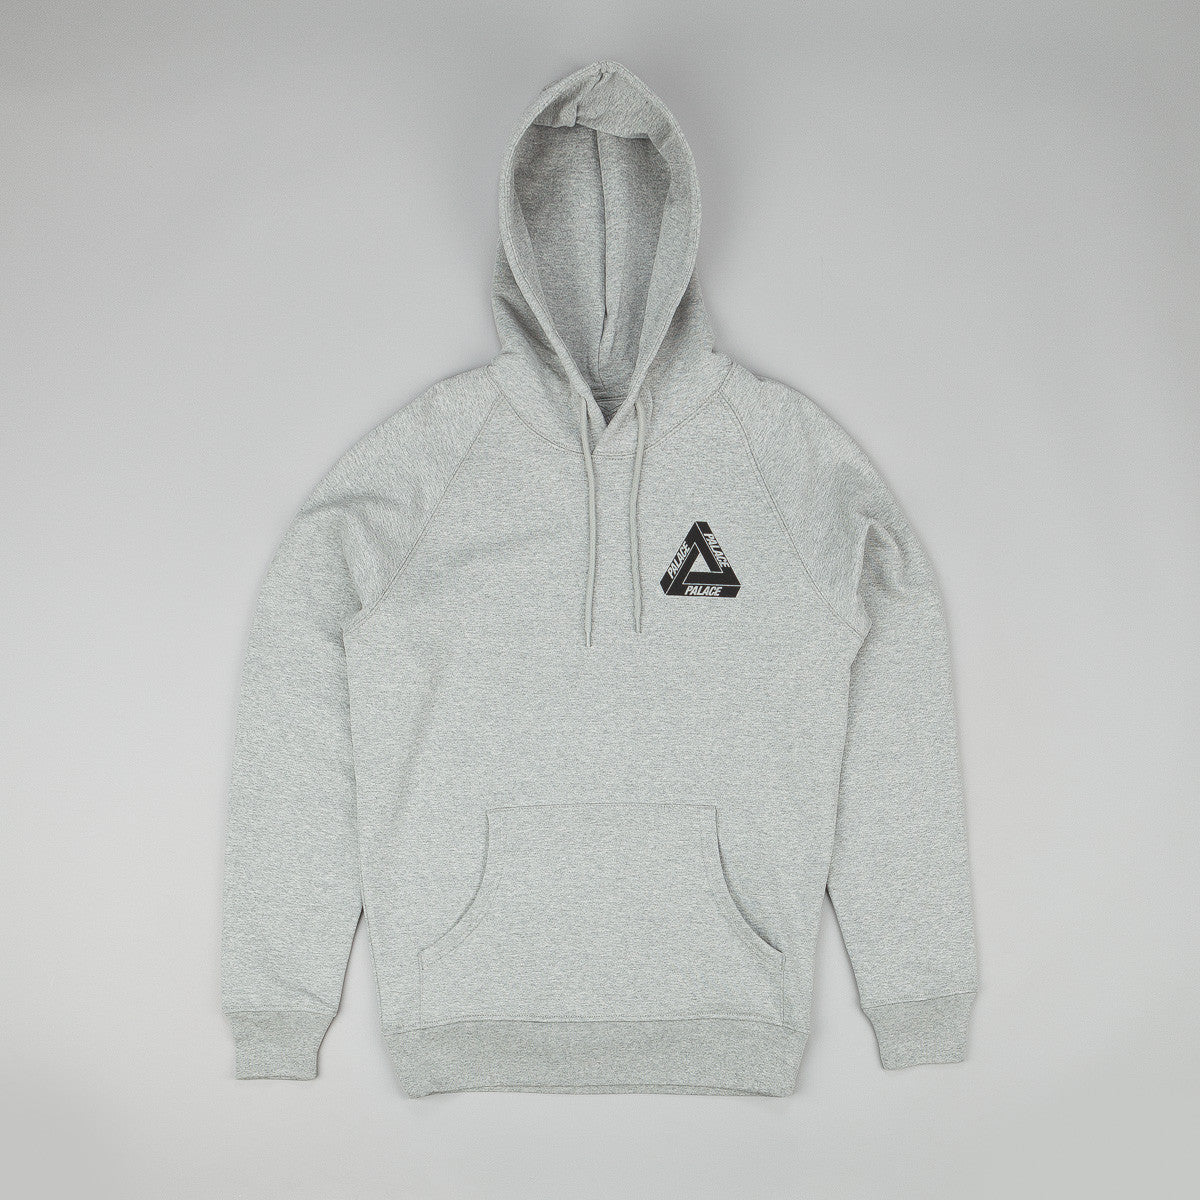 Palace Drury Yard Hooded Sweatshirt